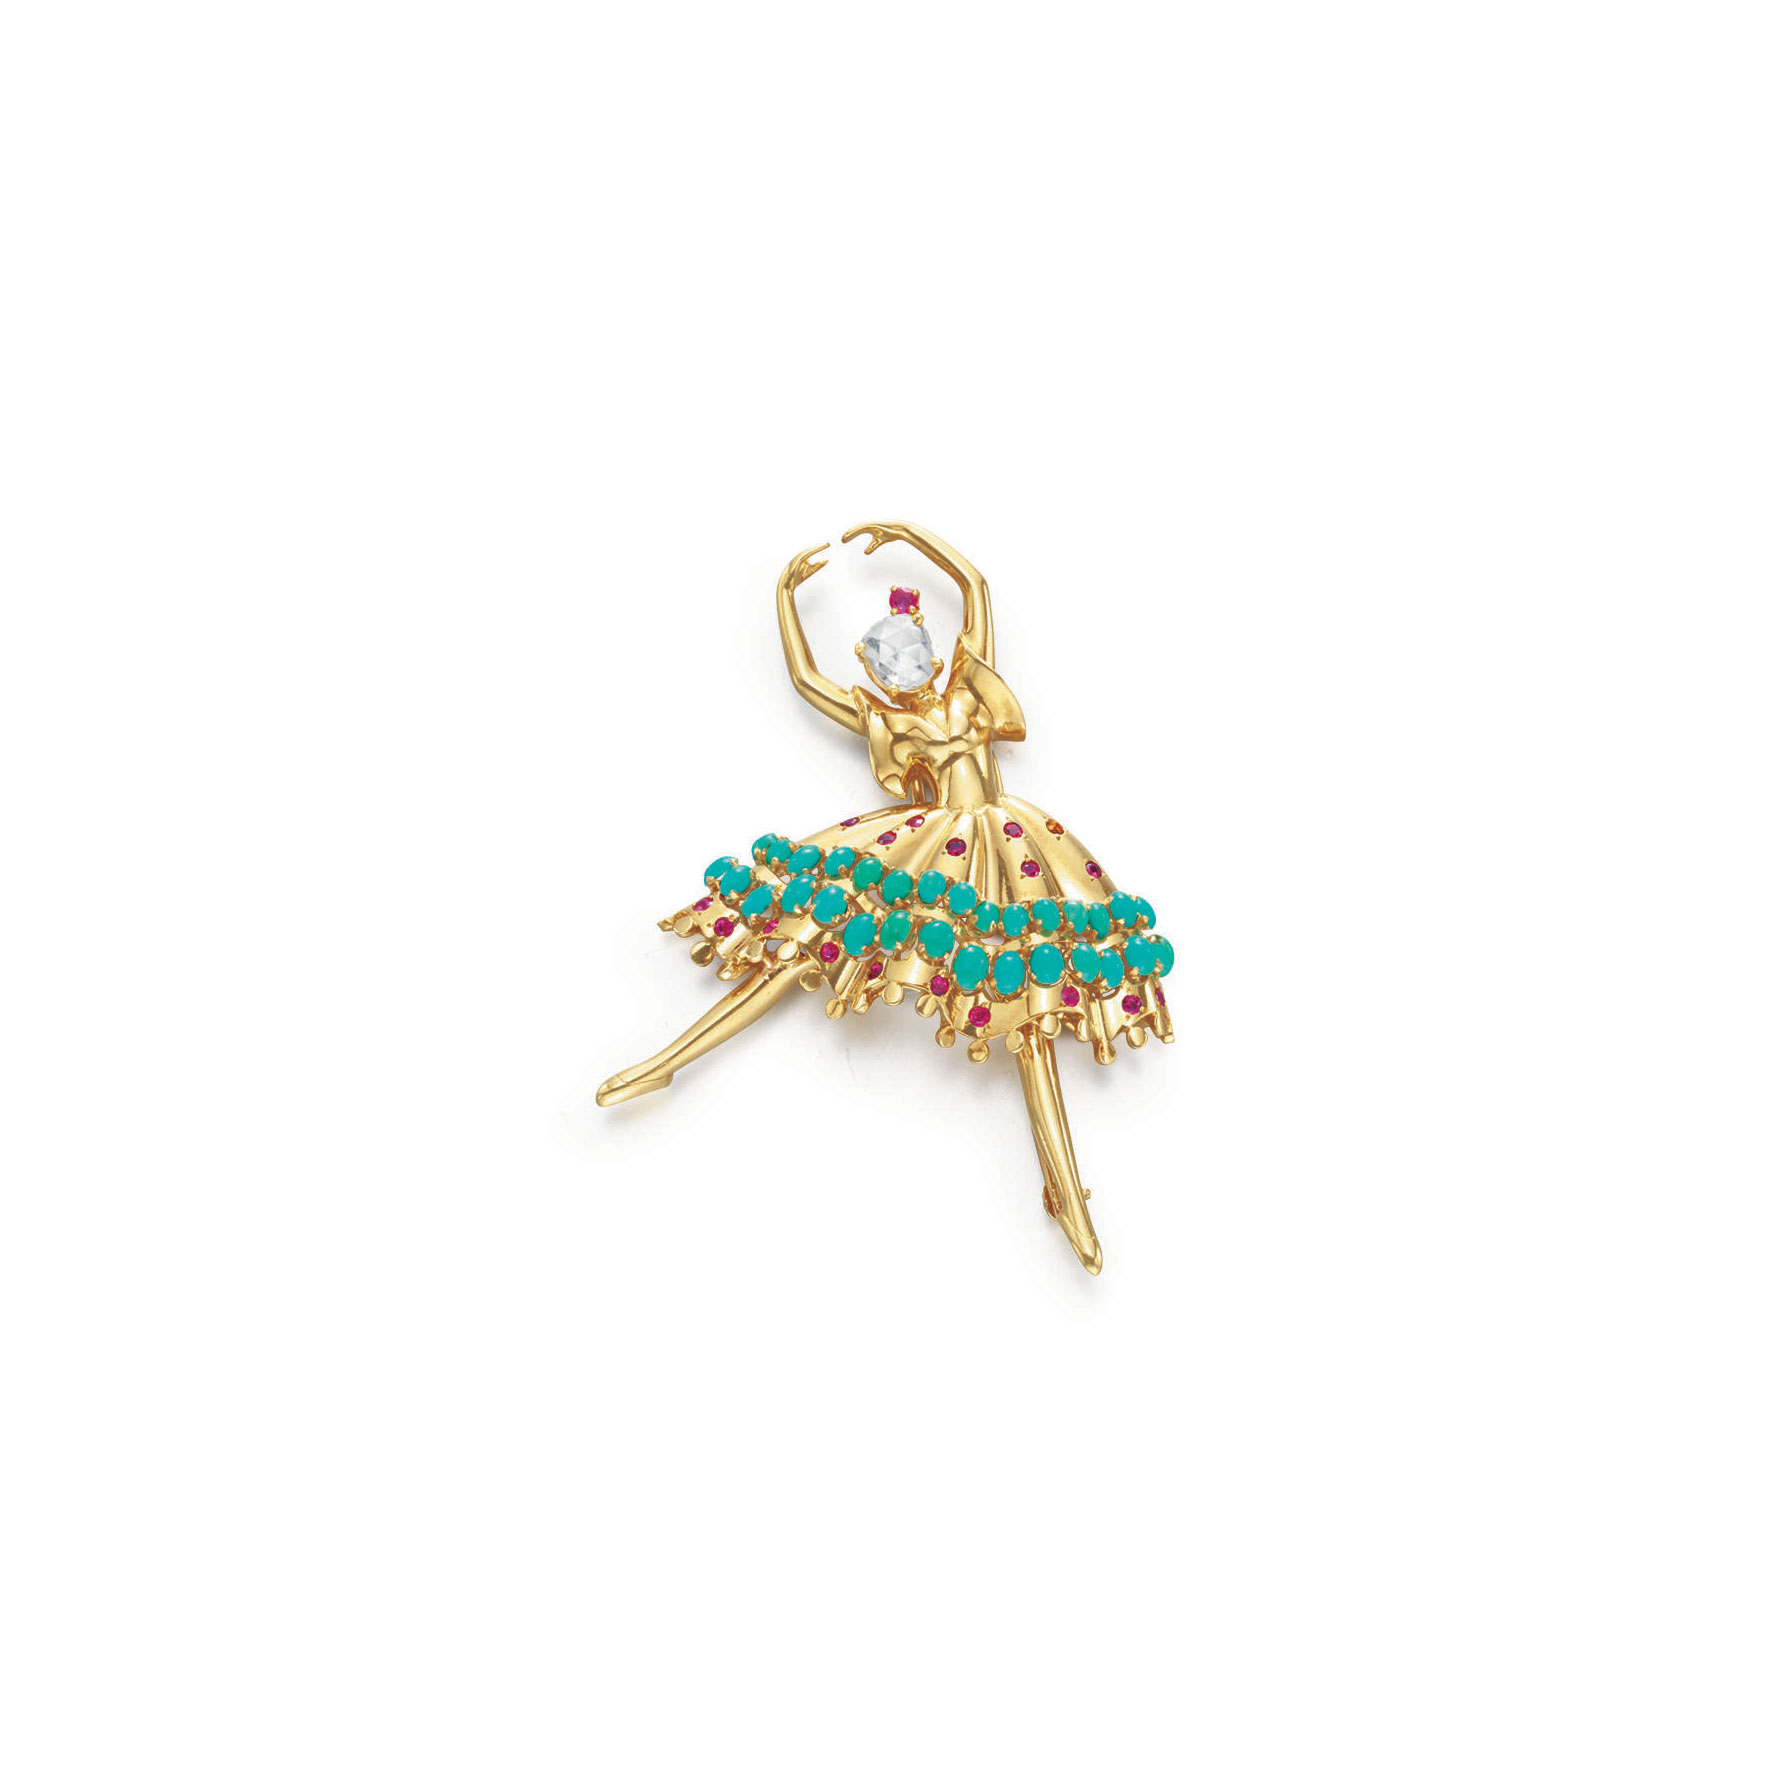 A RETRO GOLD, DIAMOND, RUBY AND TURQUOISE BALLERINA BROOCH, BY JOHN RUBEL CO.